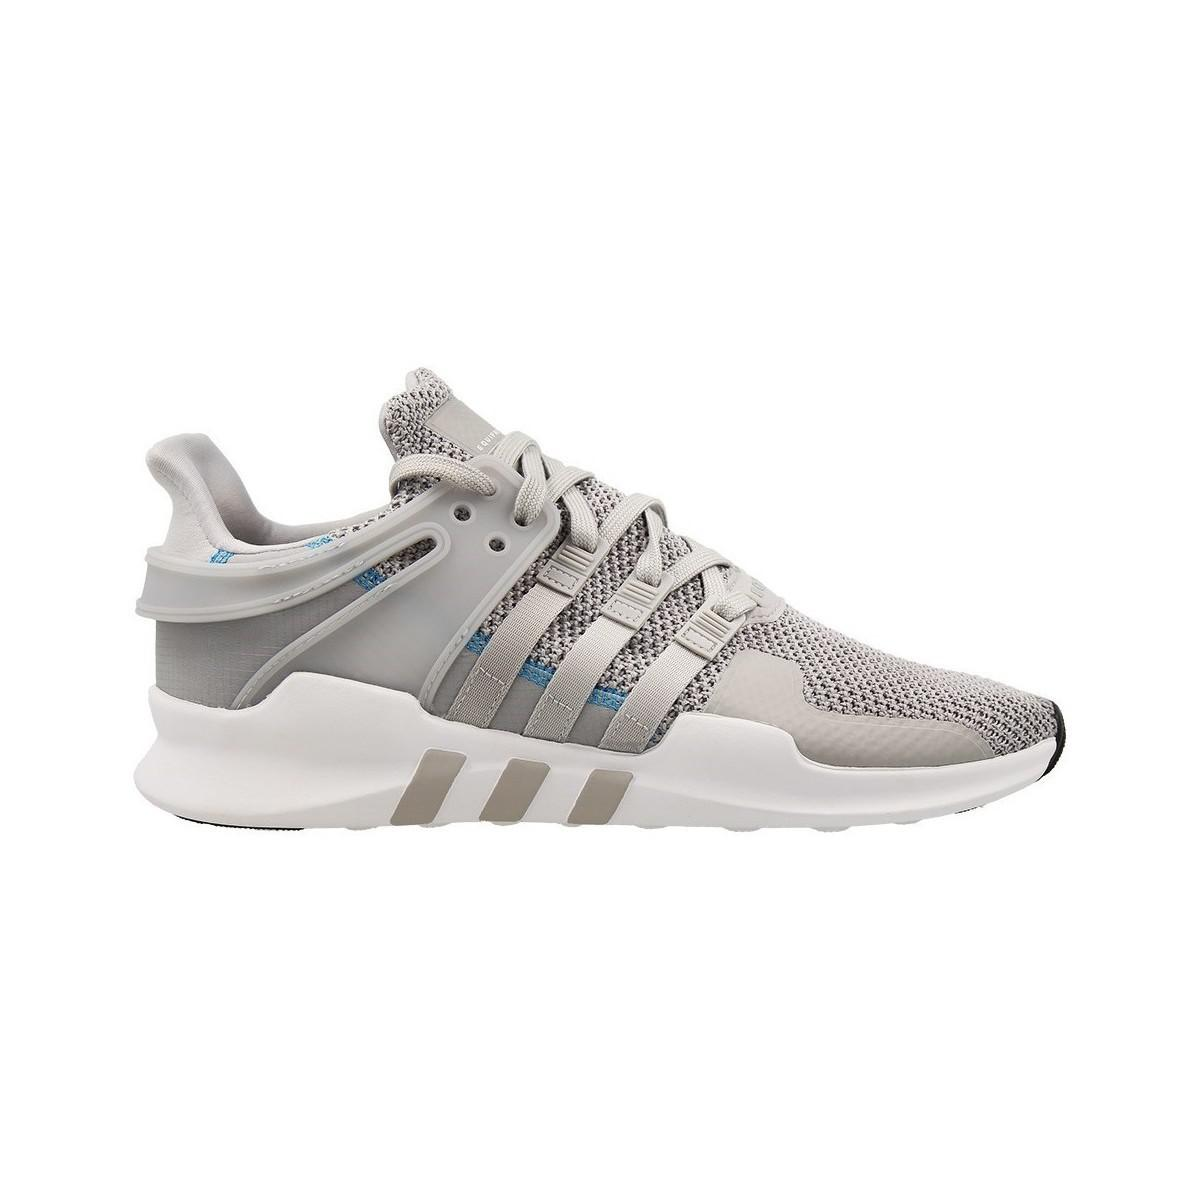 reputable site cdafd aafe7 Adidas Eqt Support Adv Mens Shoes (trainers) In White in Whi